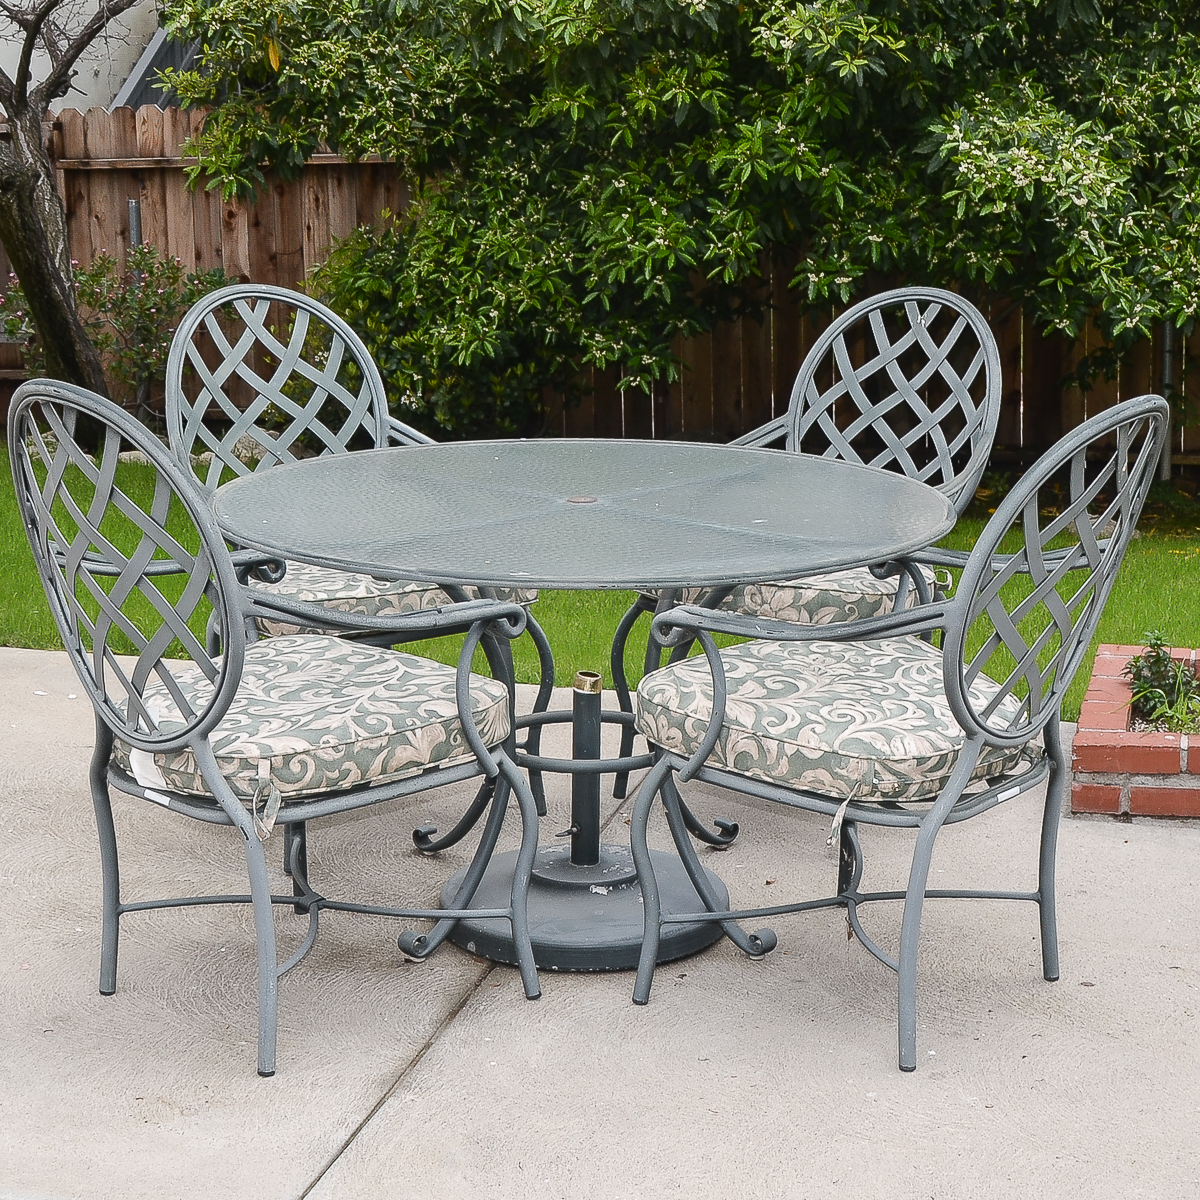 collection garden furniture accessories pictures. Patio Furniture Set Collection Garden Accessories Pictures